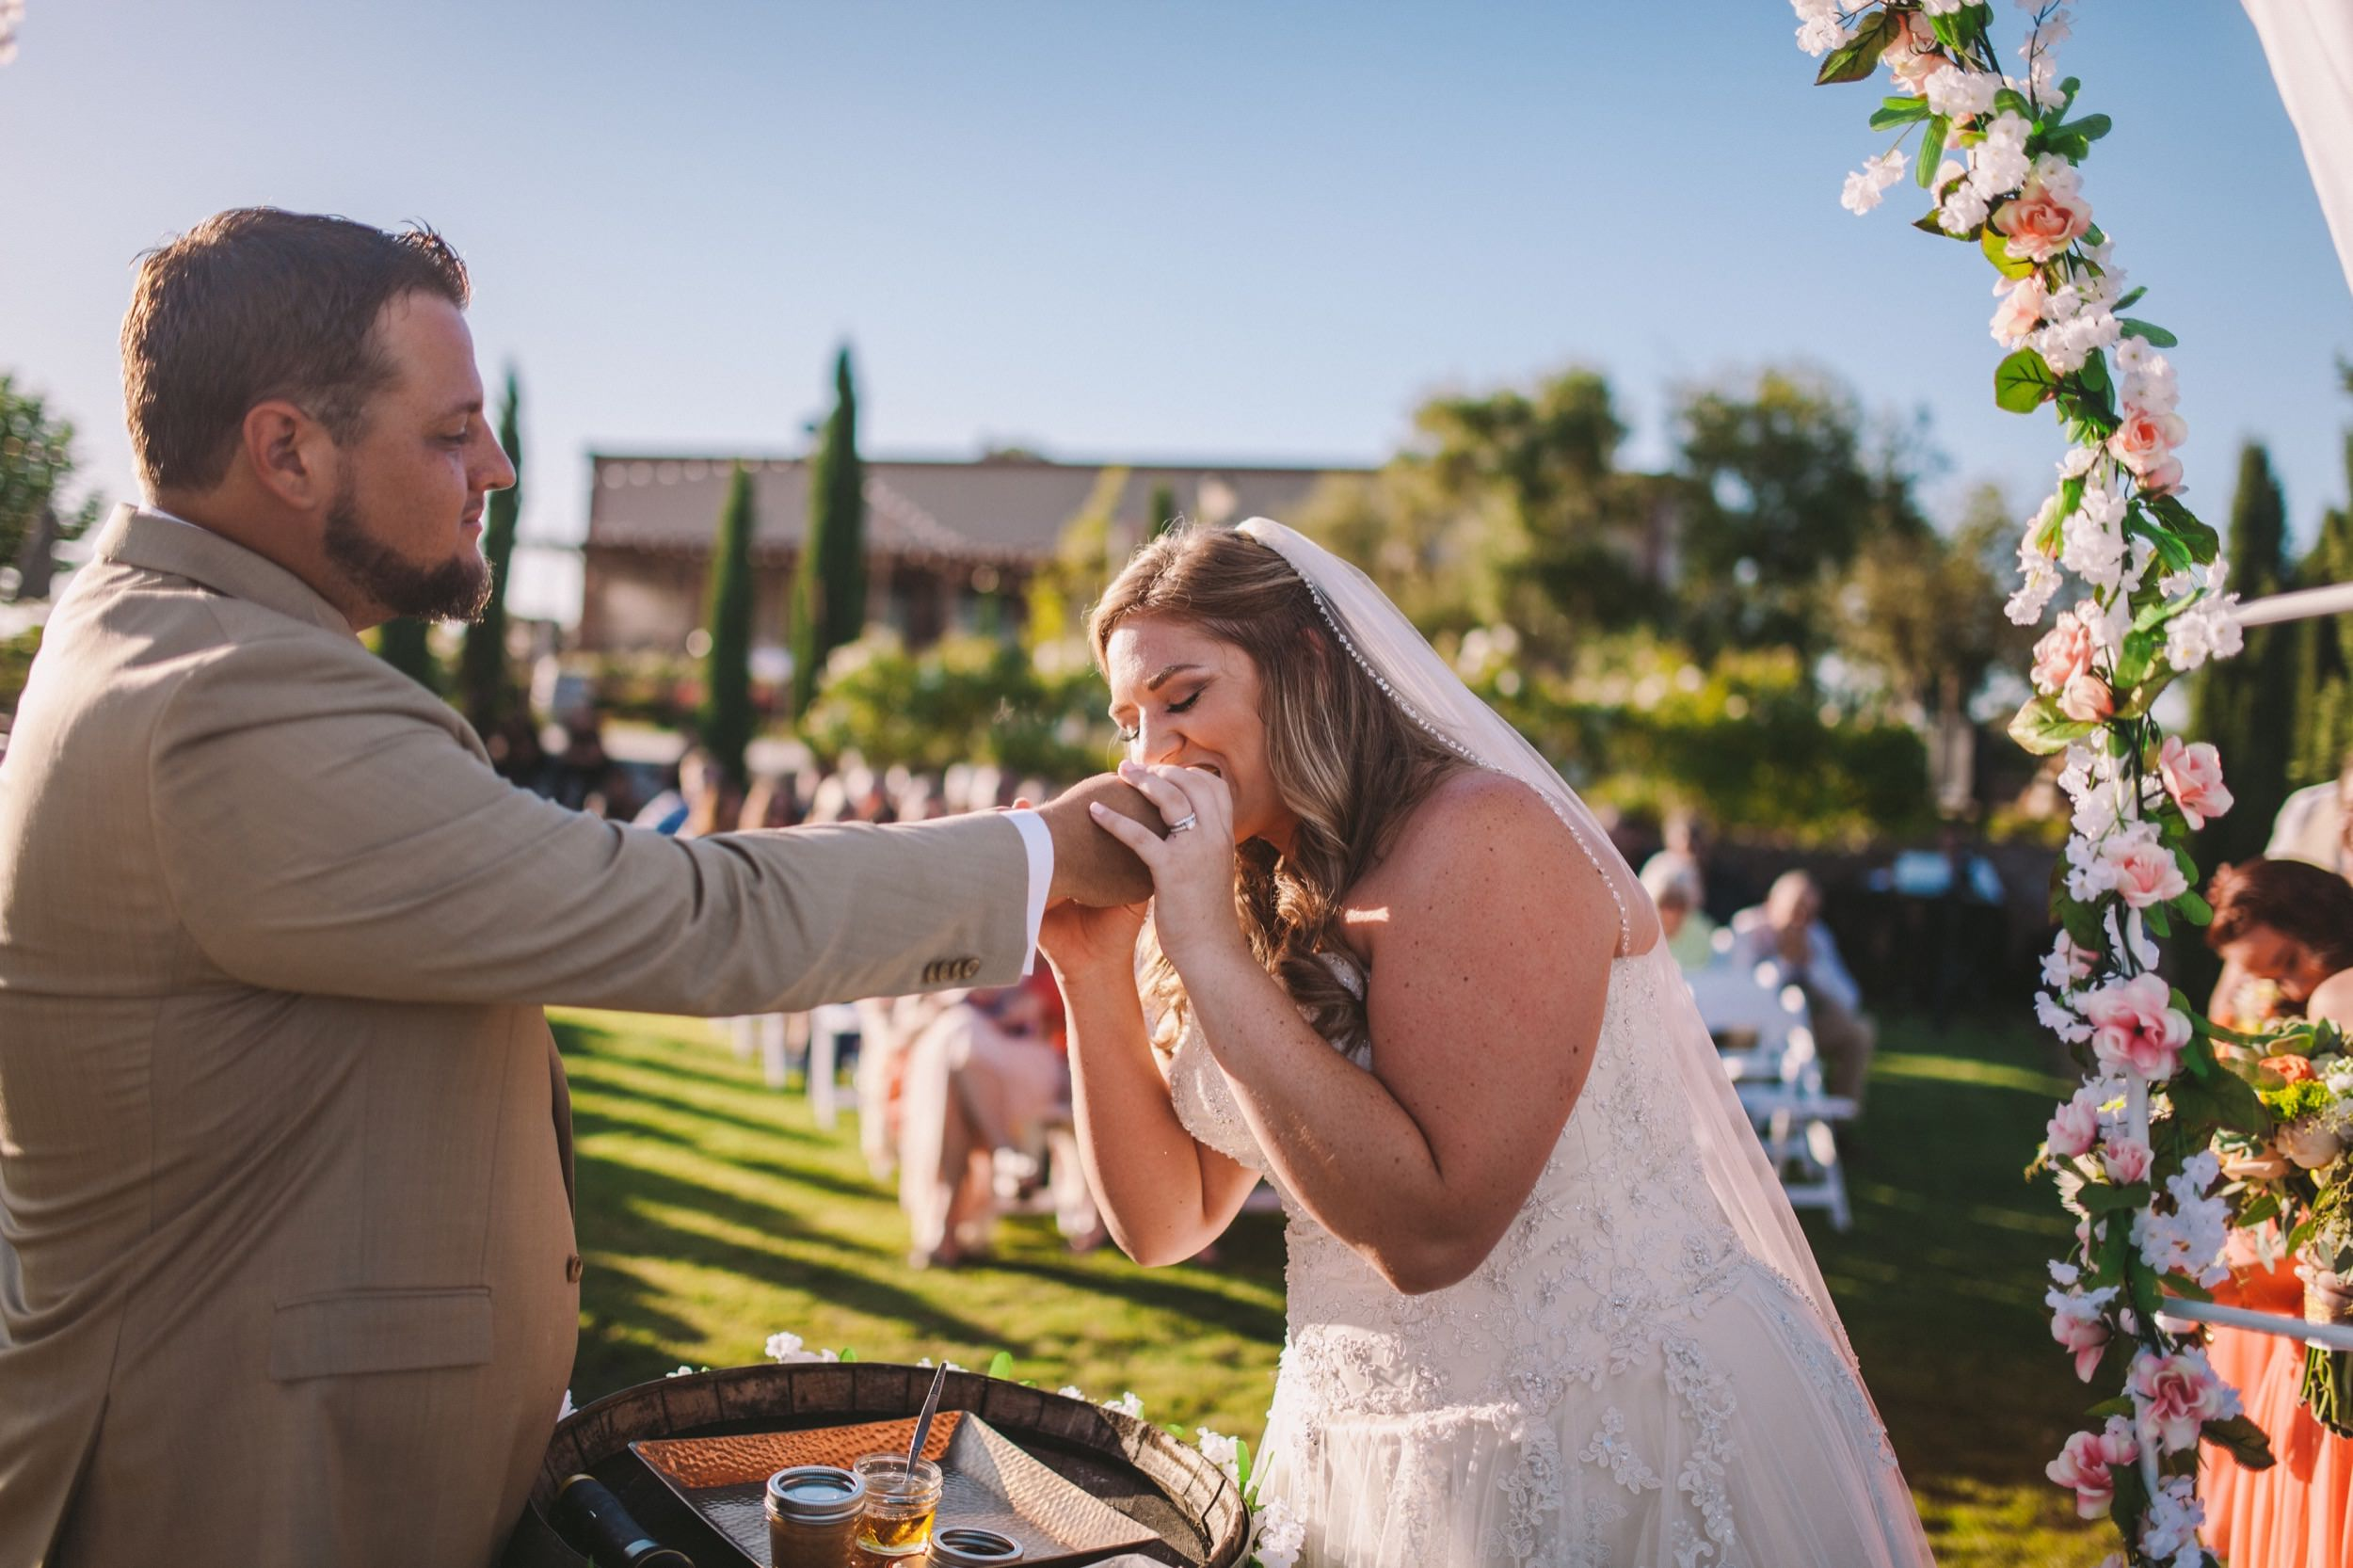 Bride & Groom Feeding Each Other Peanut Butter & Honey Sandwich During Wedding Unity Ceremony